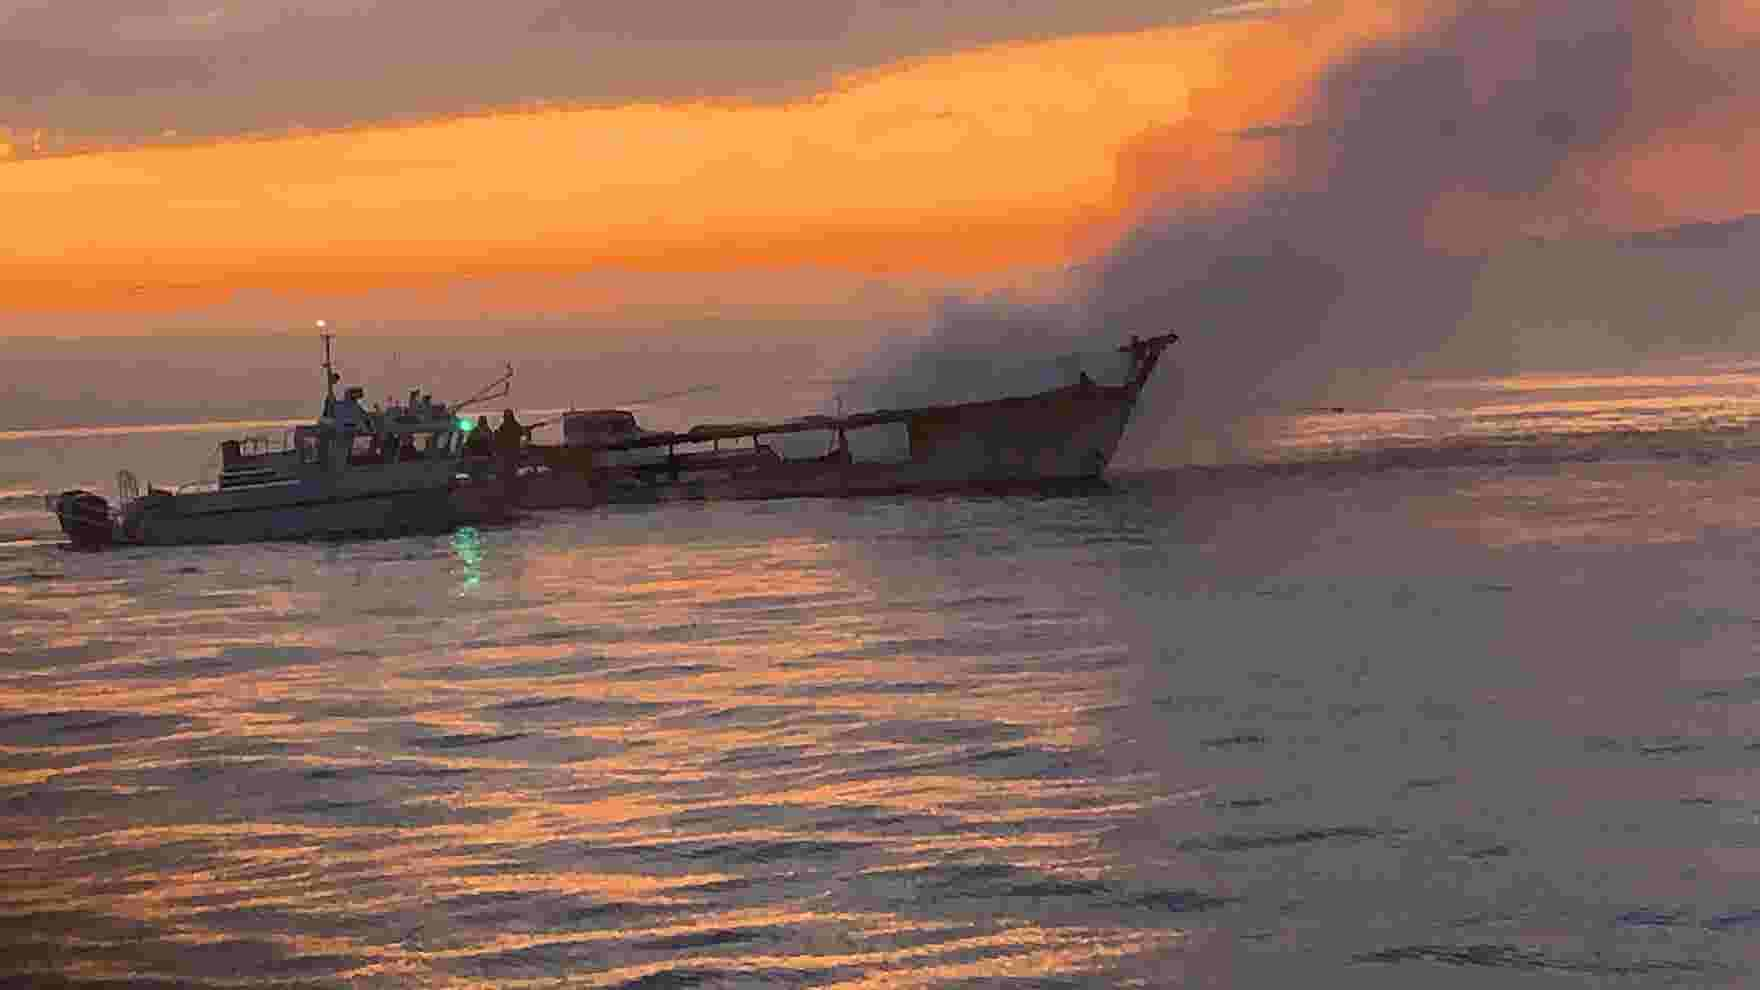 California boat fire: 22 victim names released by sheriff's